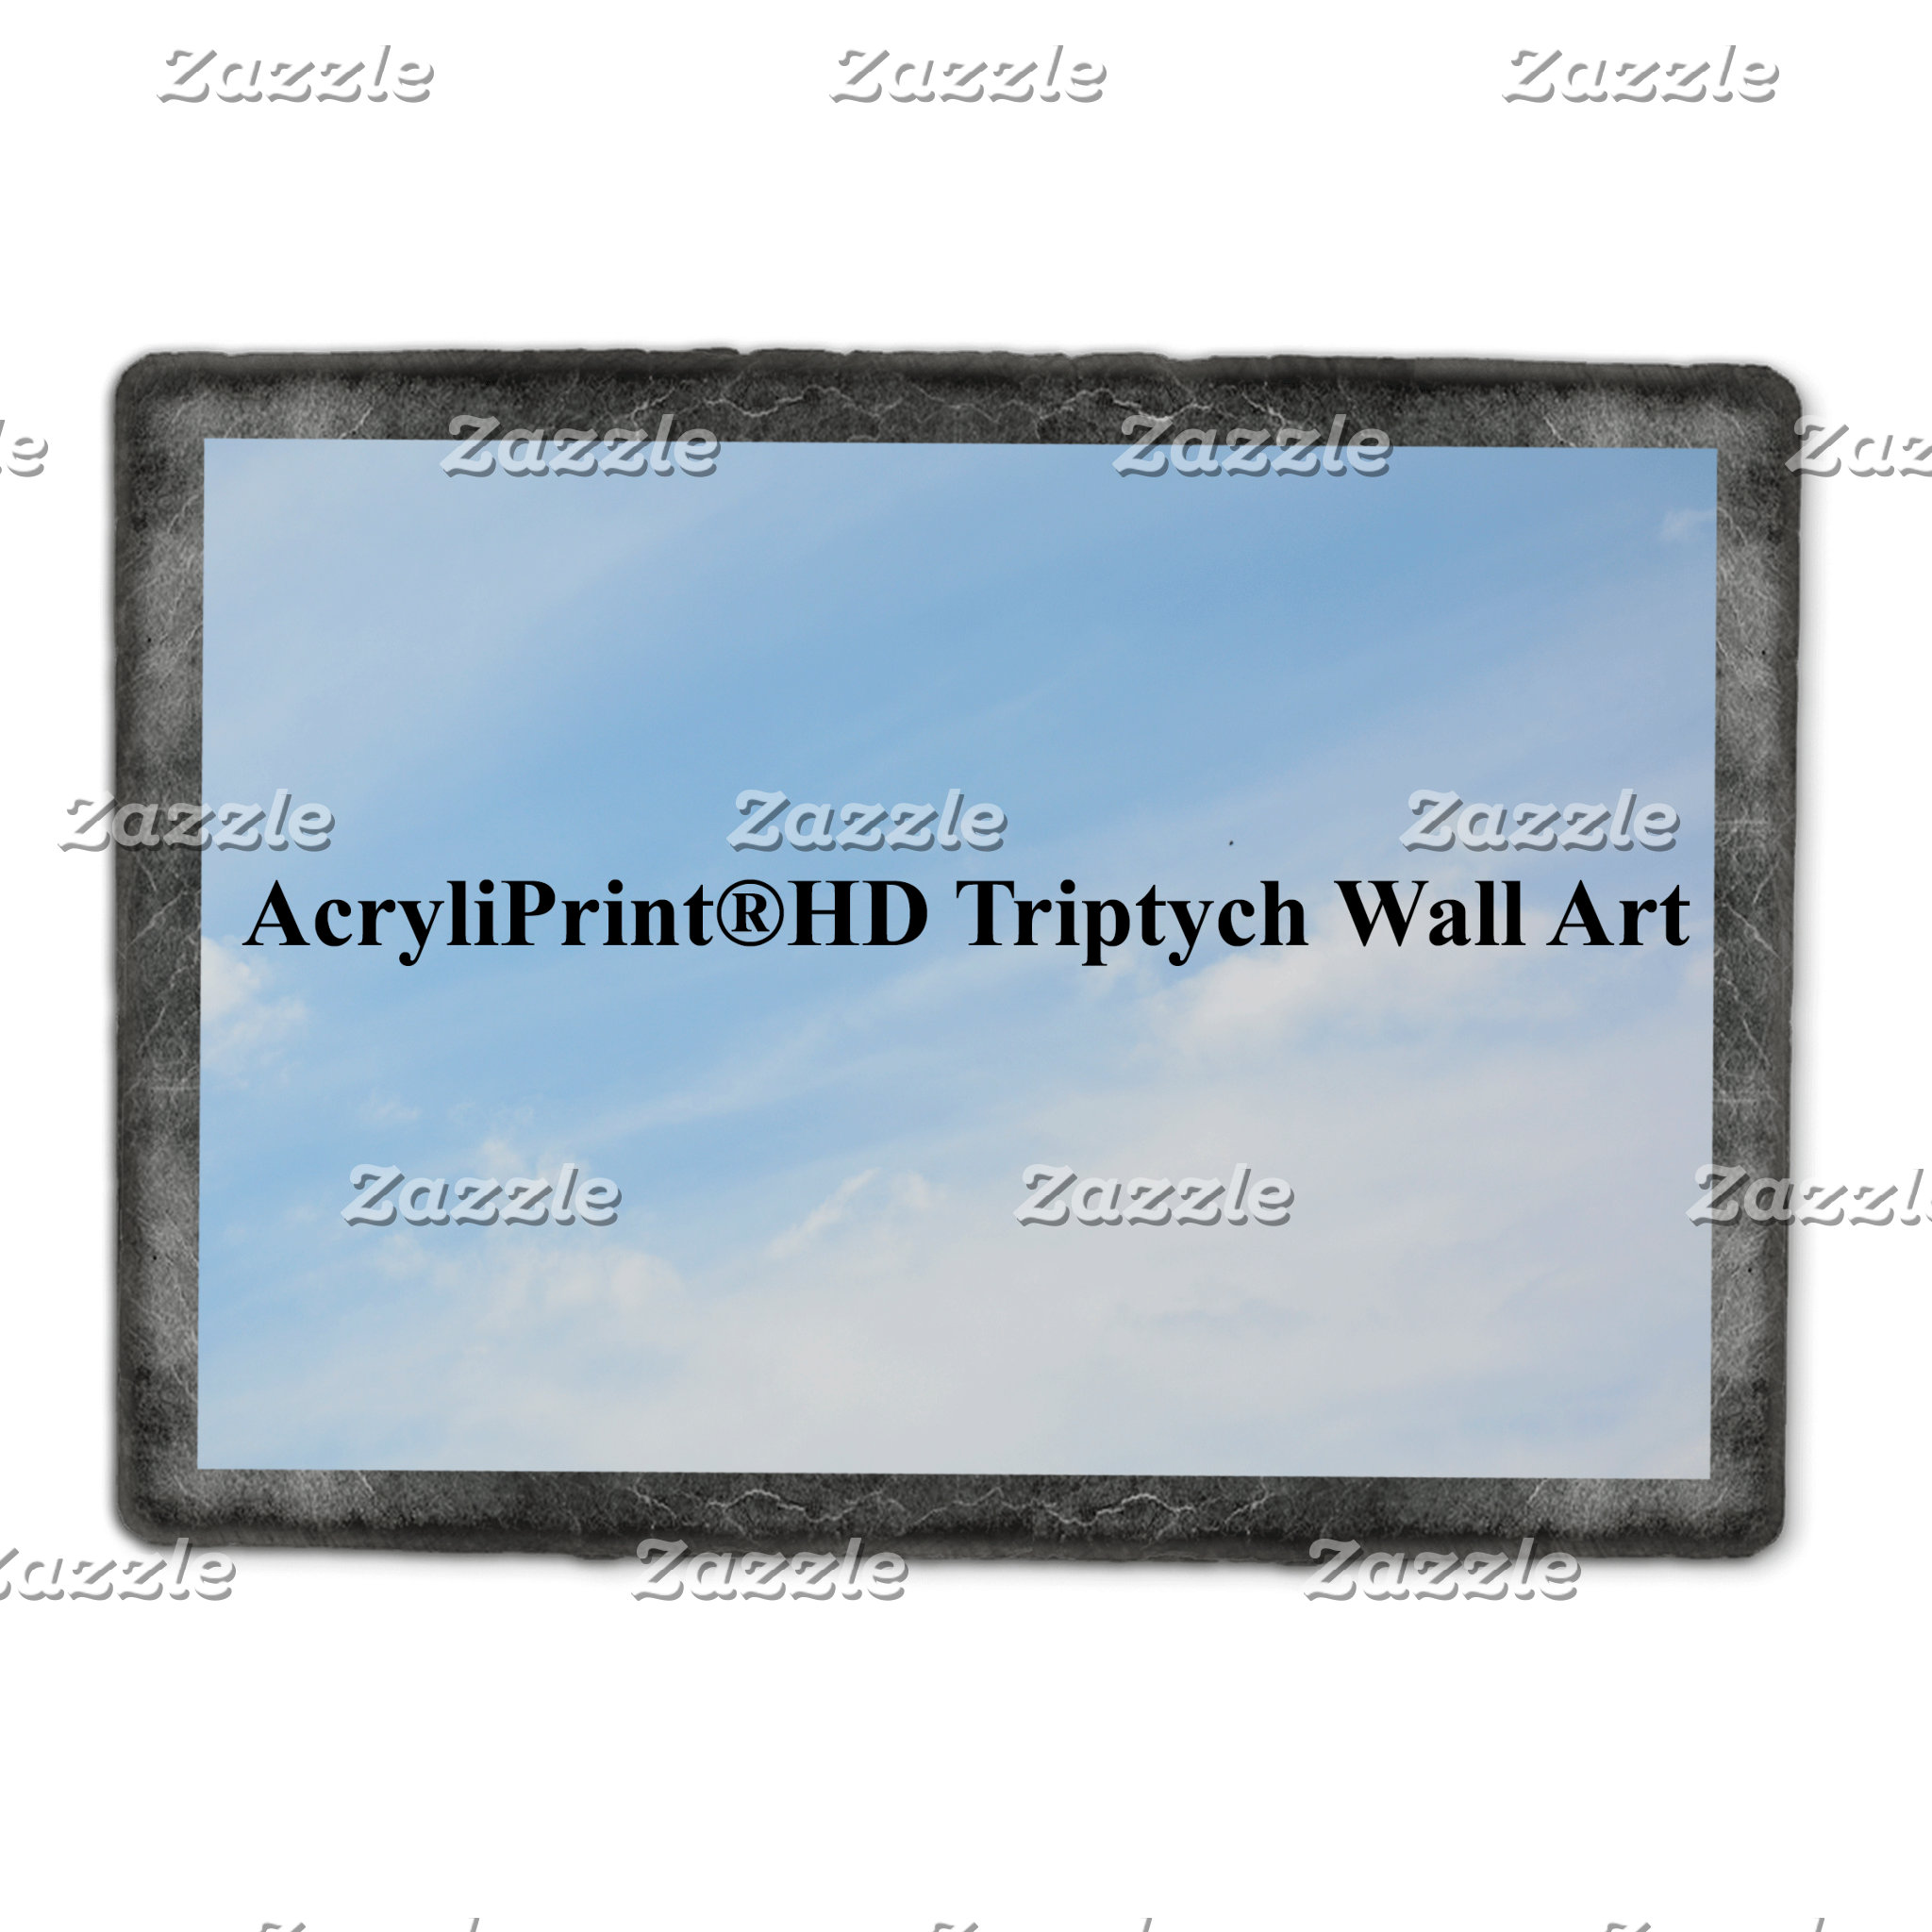 A AcryliPrint®HD Triptych Wall Art